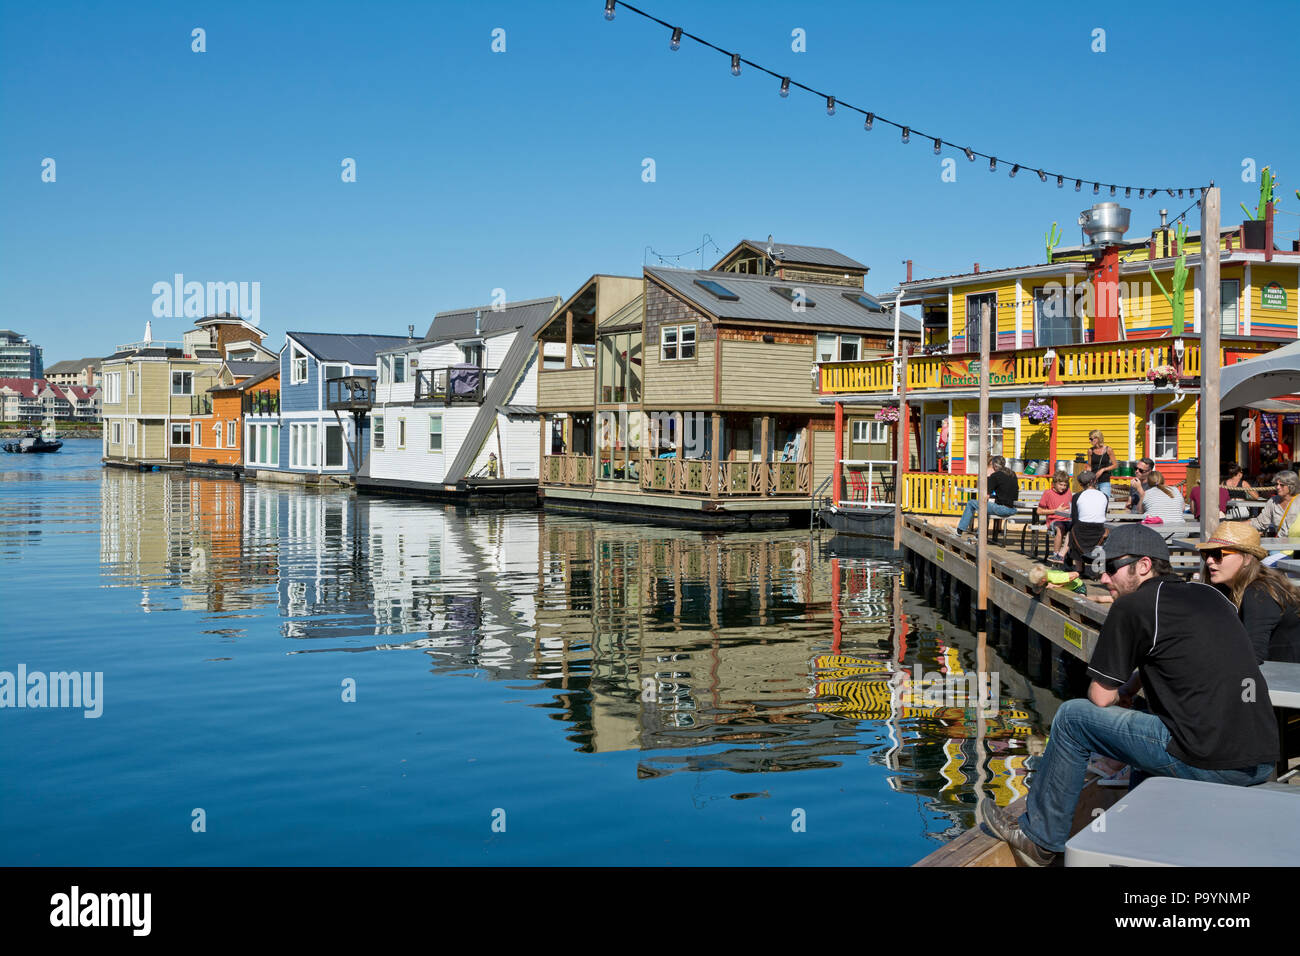 Fisherman's Wharf in Victoria, British Columbia, Canada.  Colourful float homes and restaurant at Fisherman's Wharf in Victoria, BC. Stock Photo